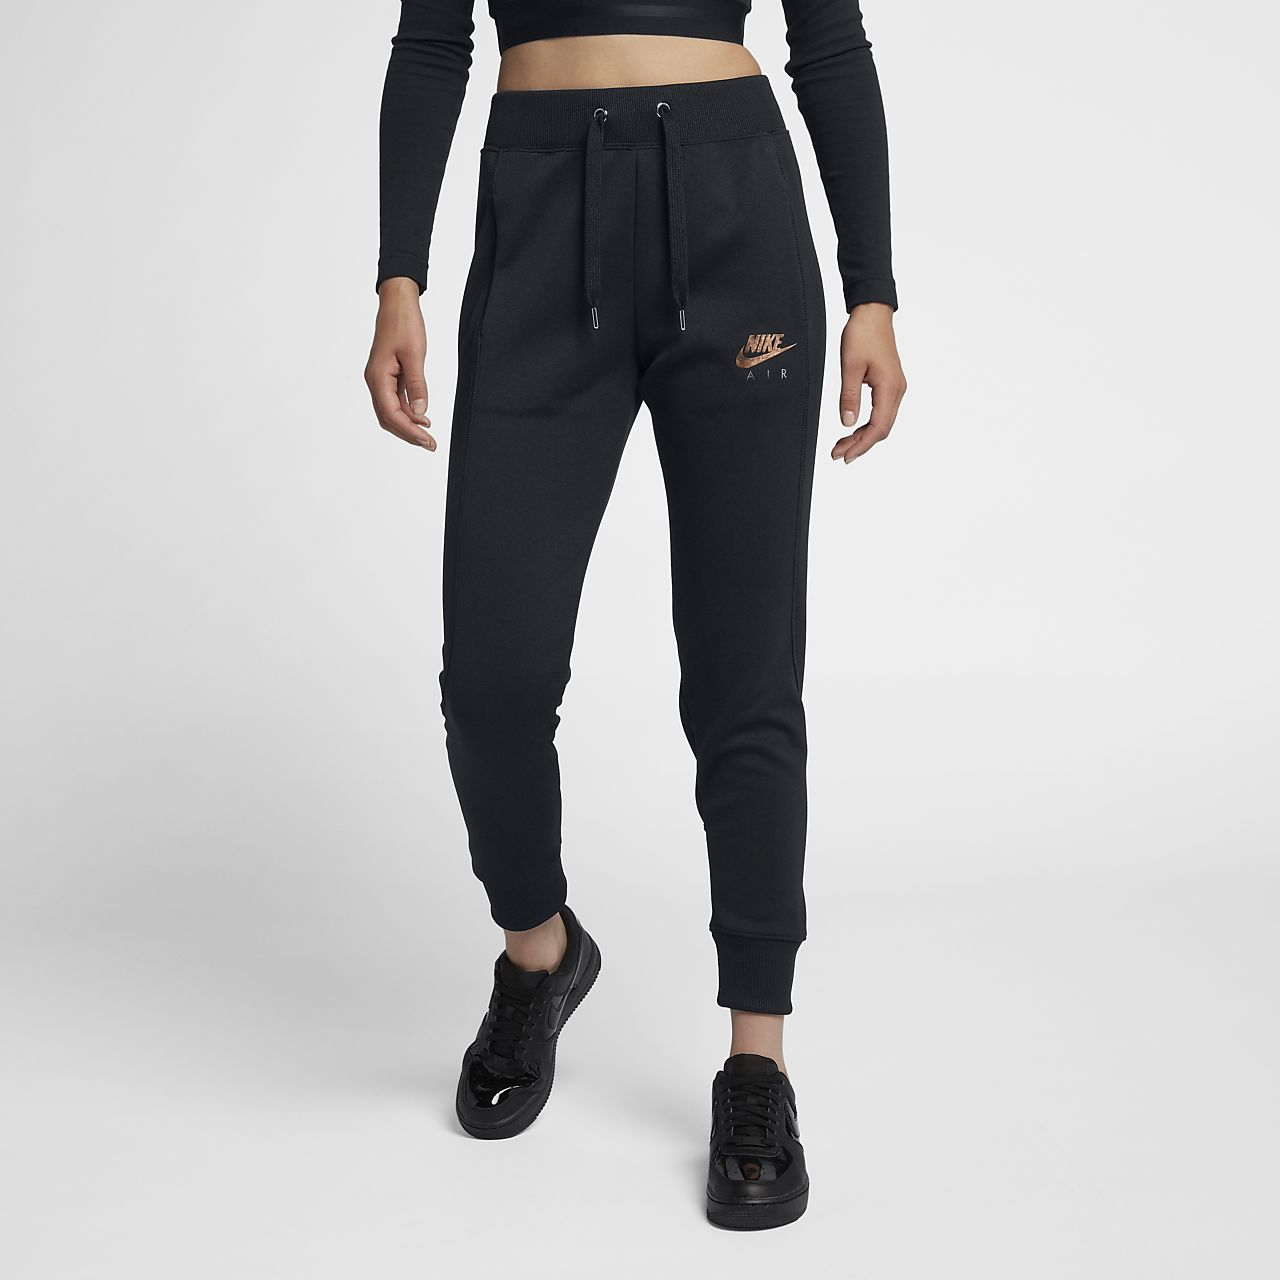 0f294c99011d ... low price nike air womens joggers e9415 56436